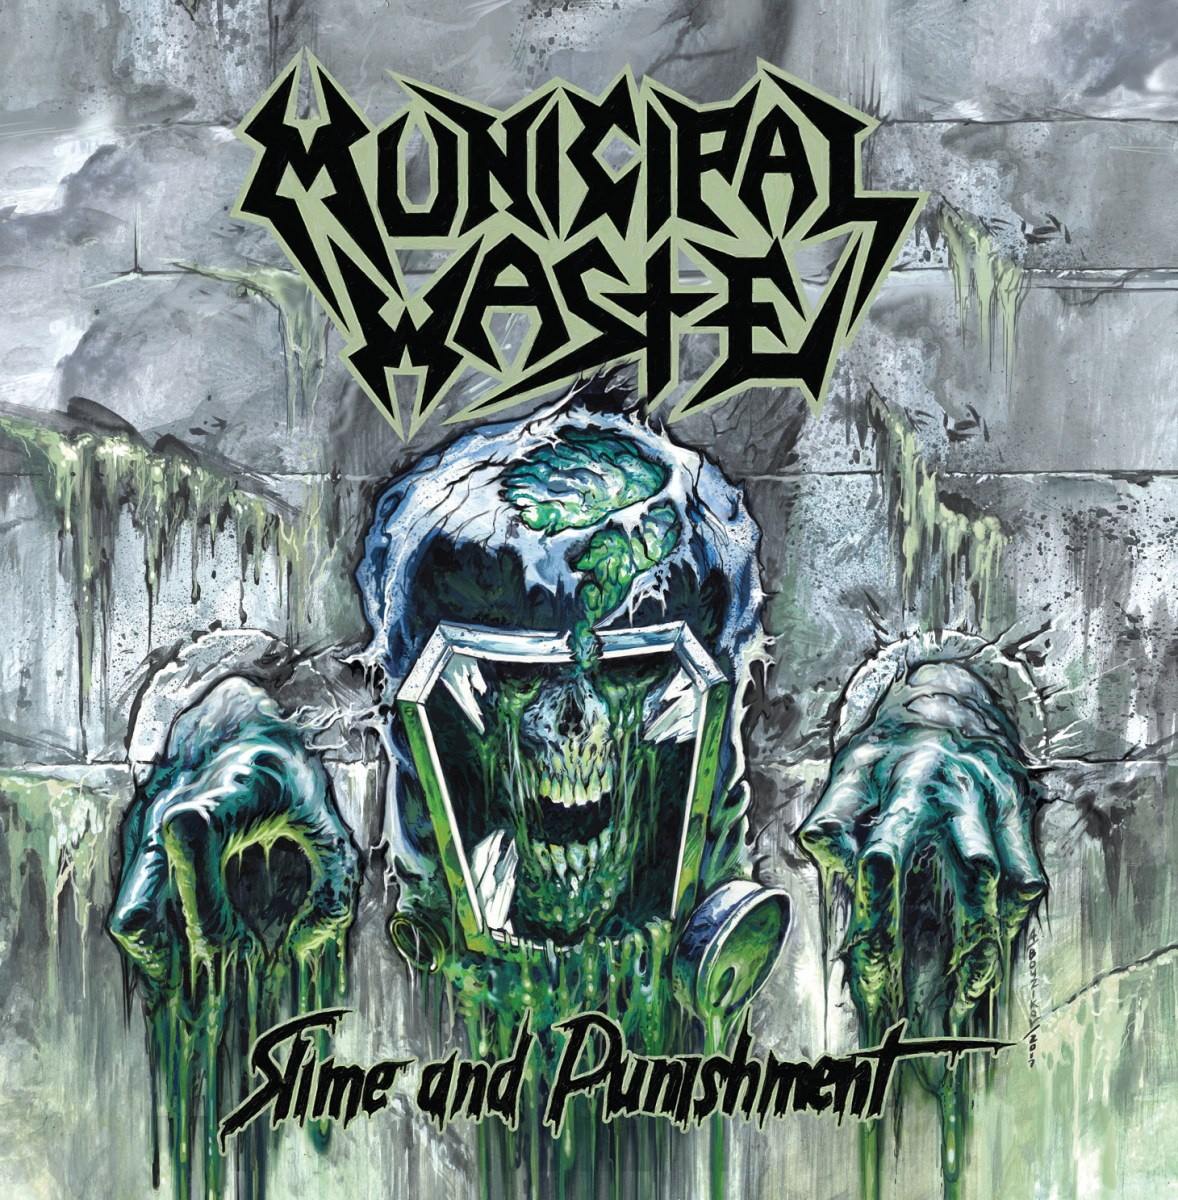 MUNICIPAL WASTE - 'Slime And Punishment' New Album Out Now!